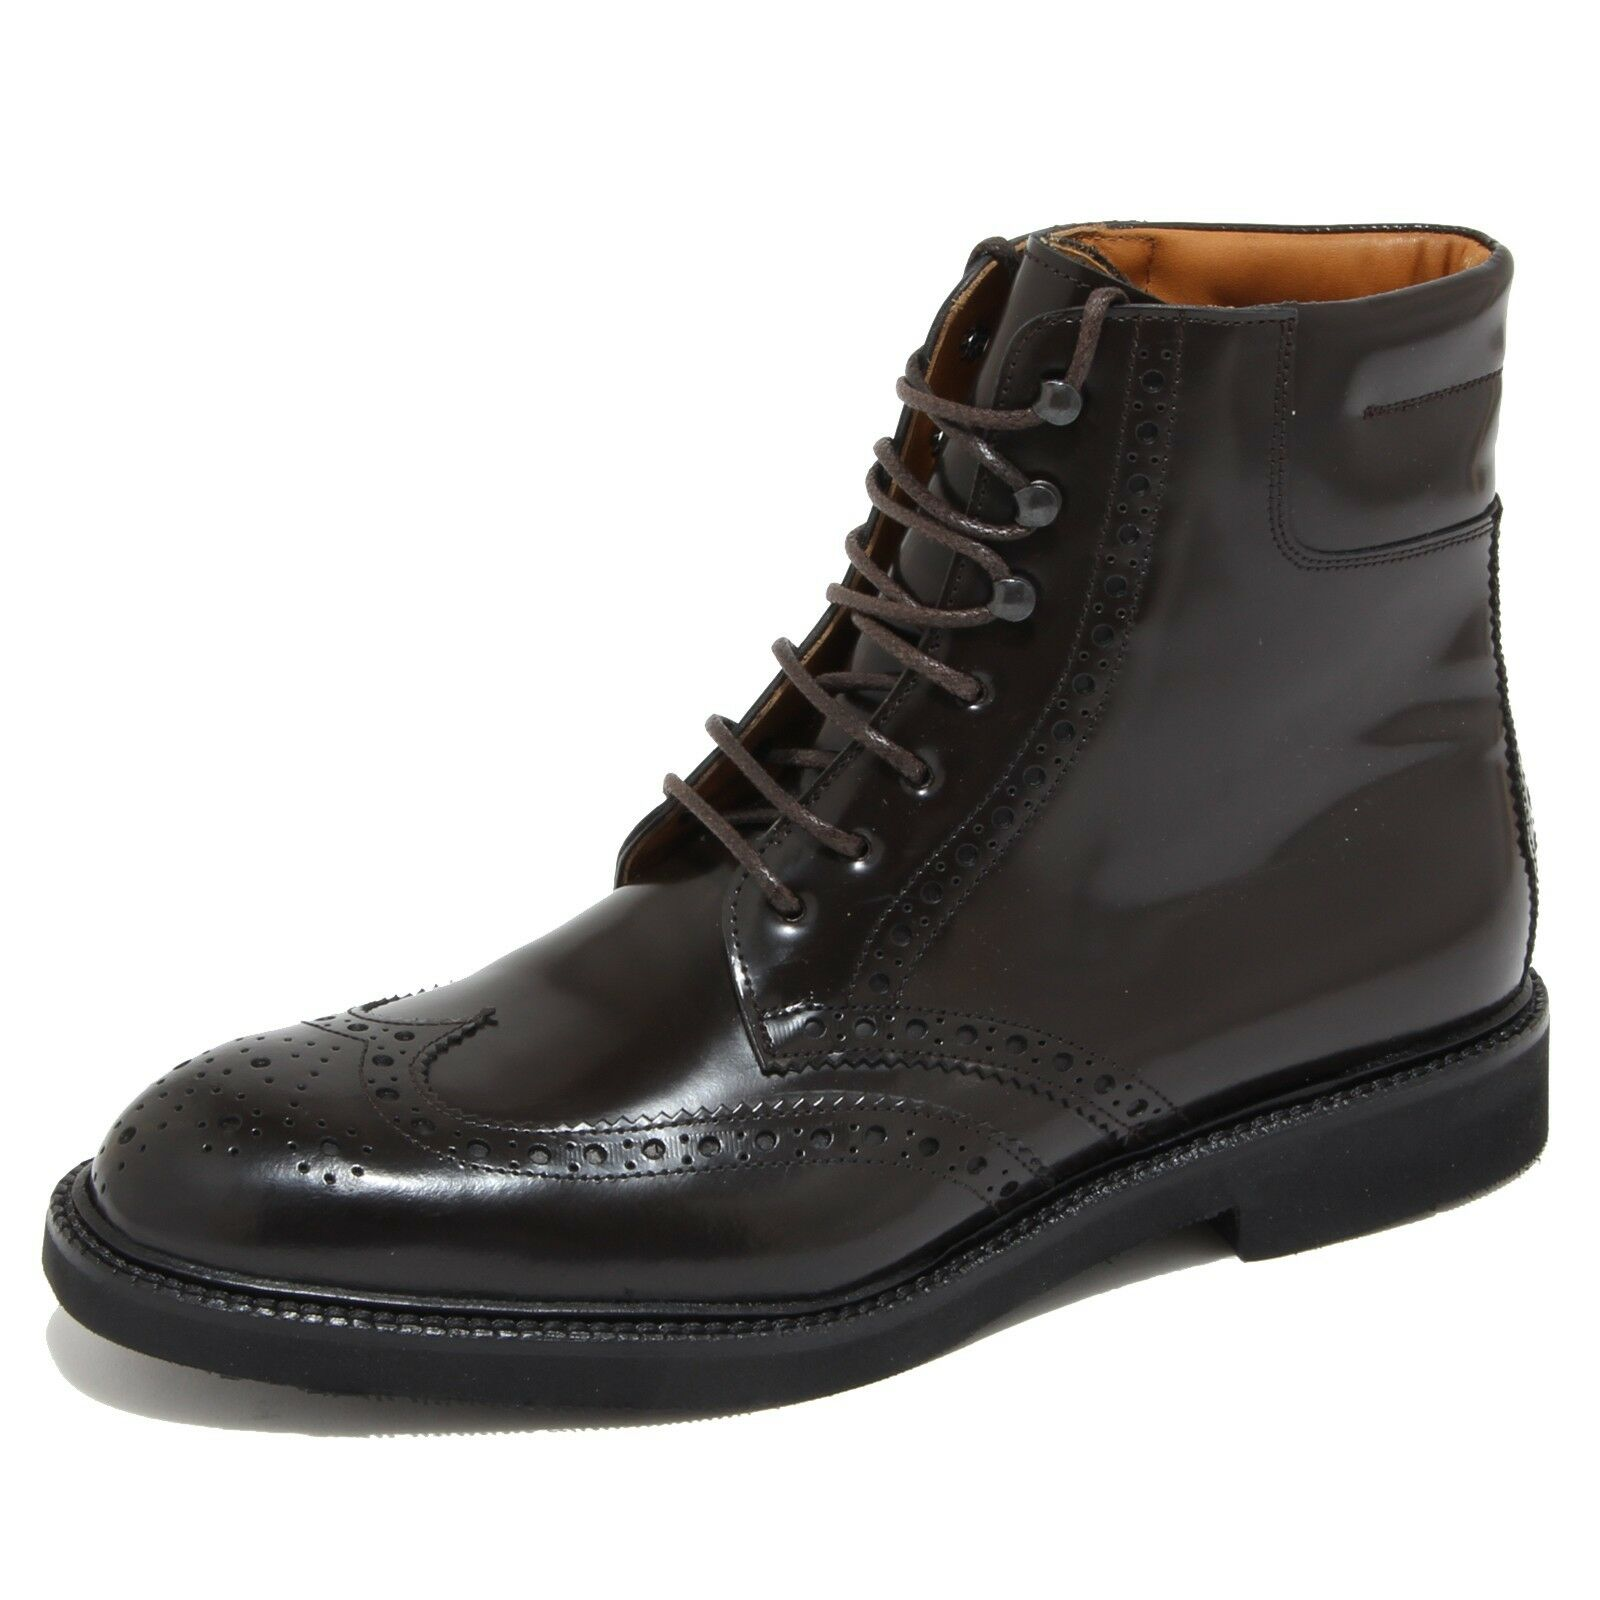 4348N stivale uomo J. HOLBENS tronchetto marrone schuhe boots man